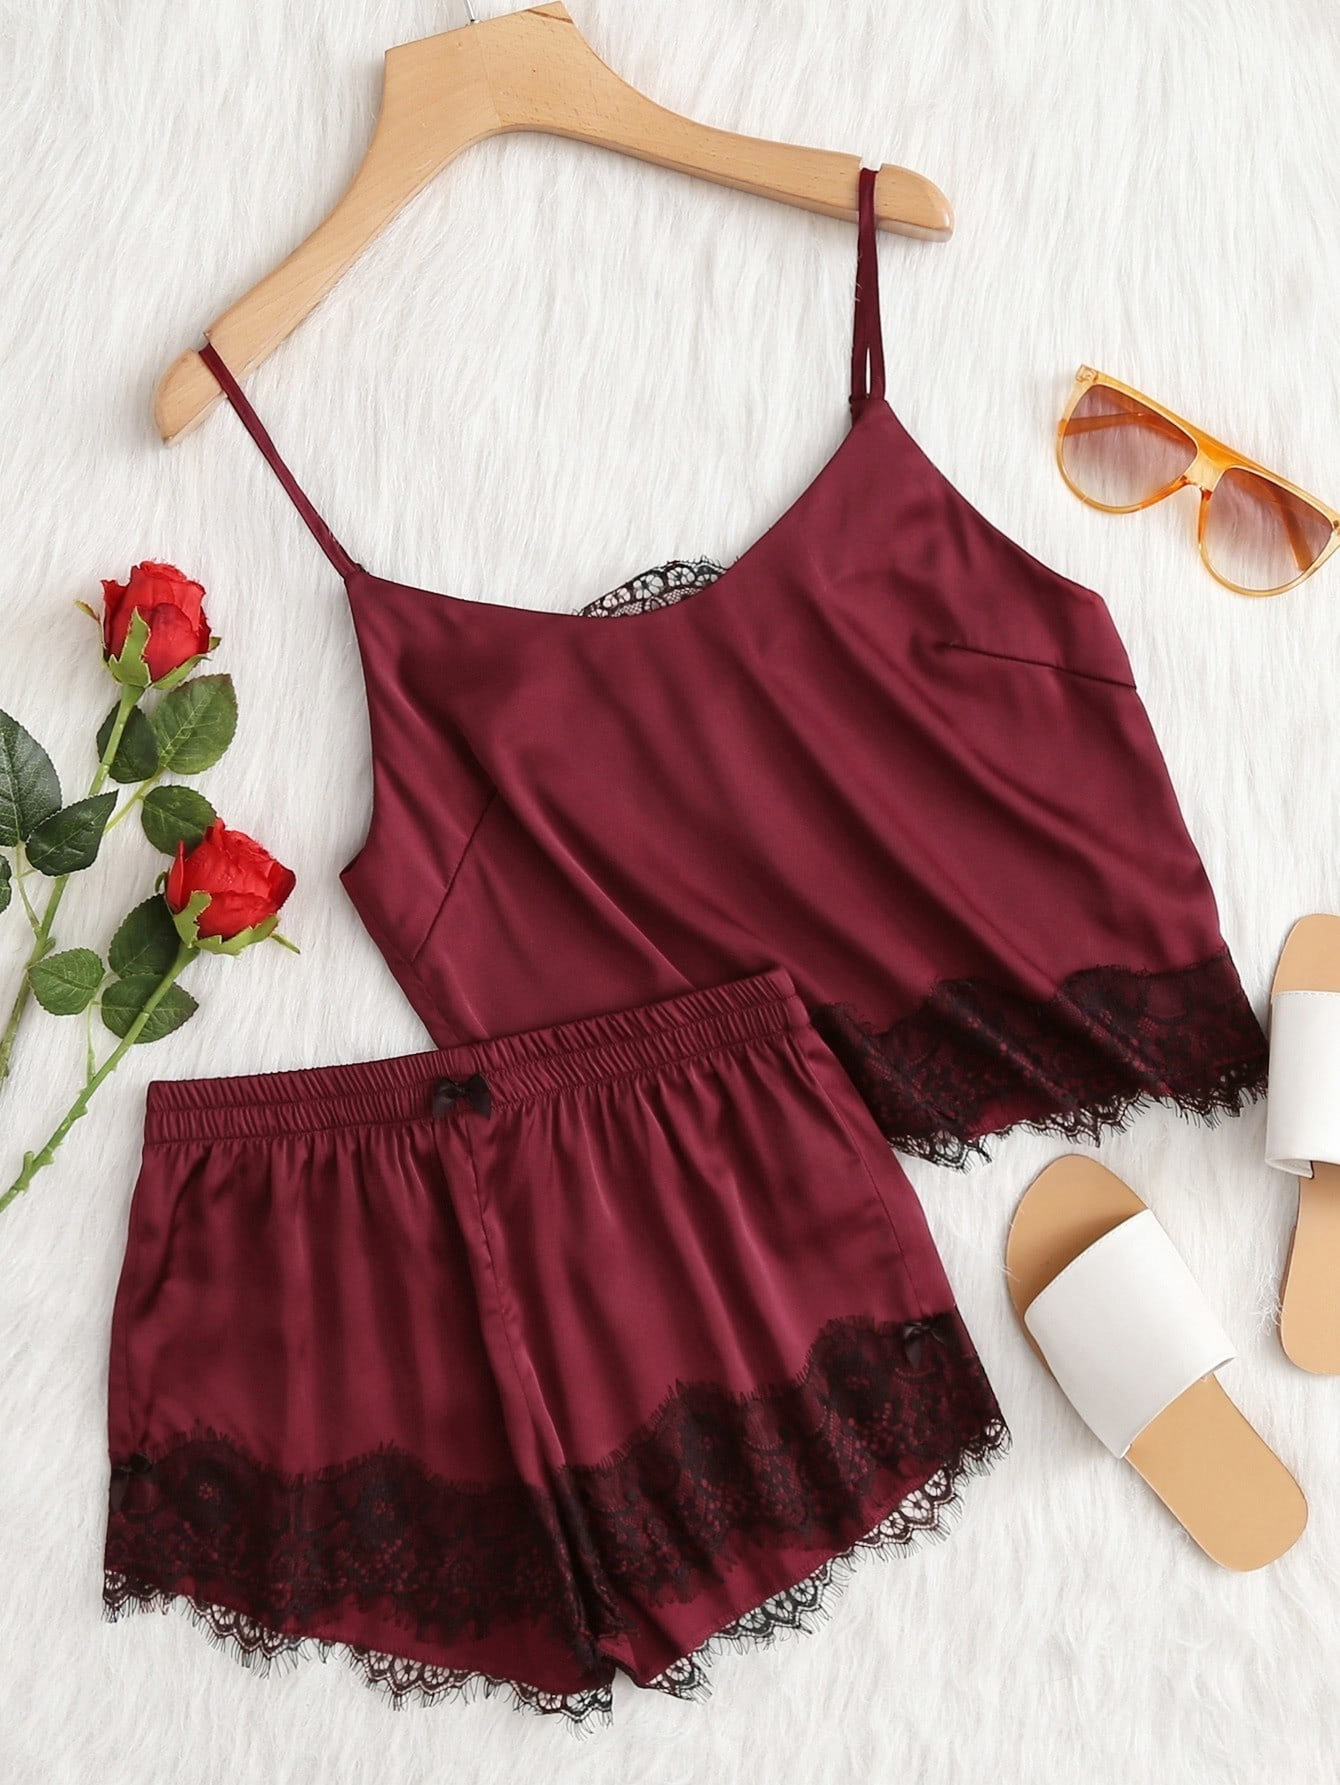 Satin Cami mit Spitzen, Applikation und Shorts Pj Set